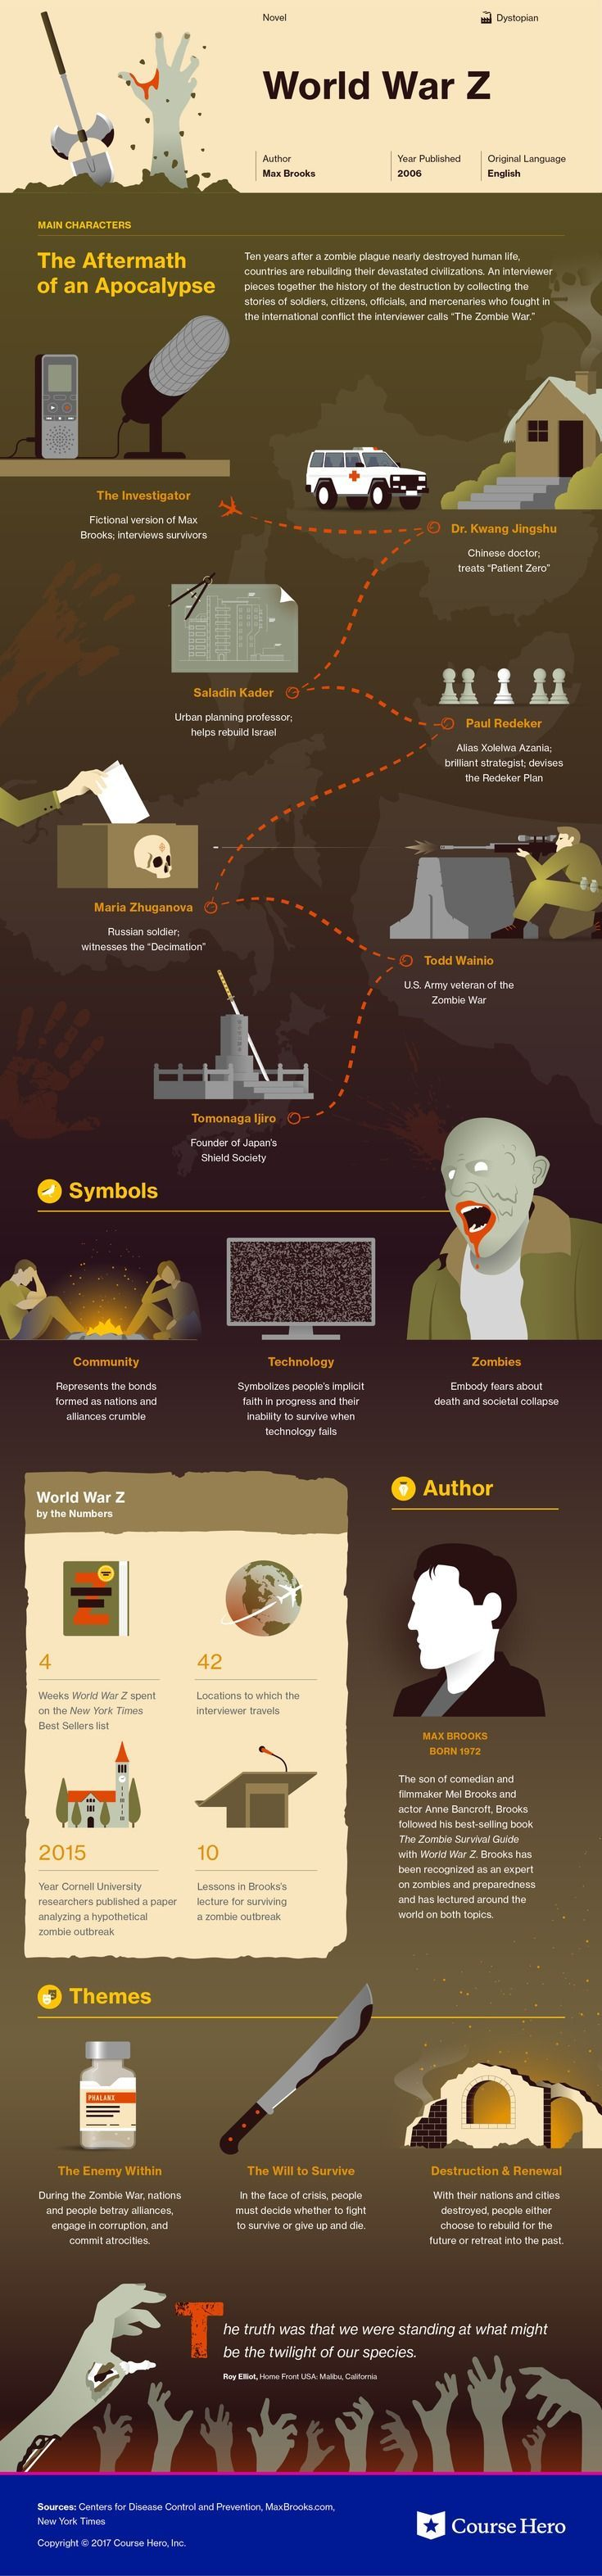 447 best infographic stories images on pinterest beds classic check out this infographic for max brooks world war z offers summary and analysis on buycottarizona